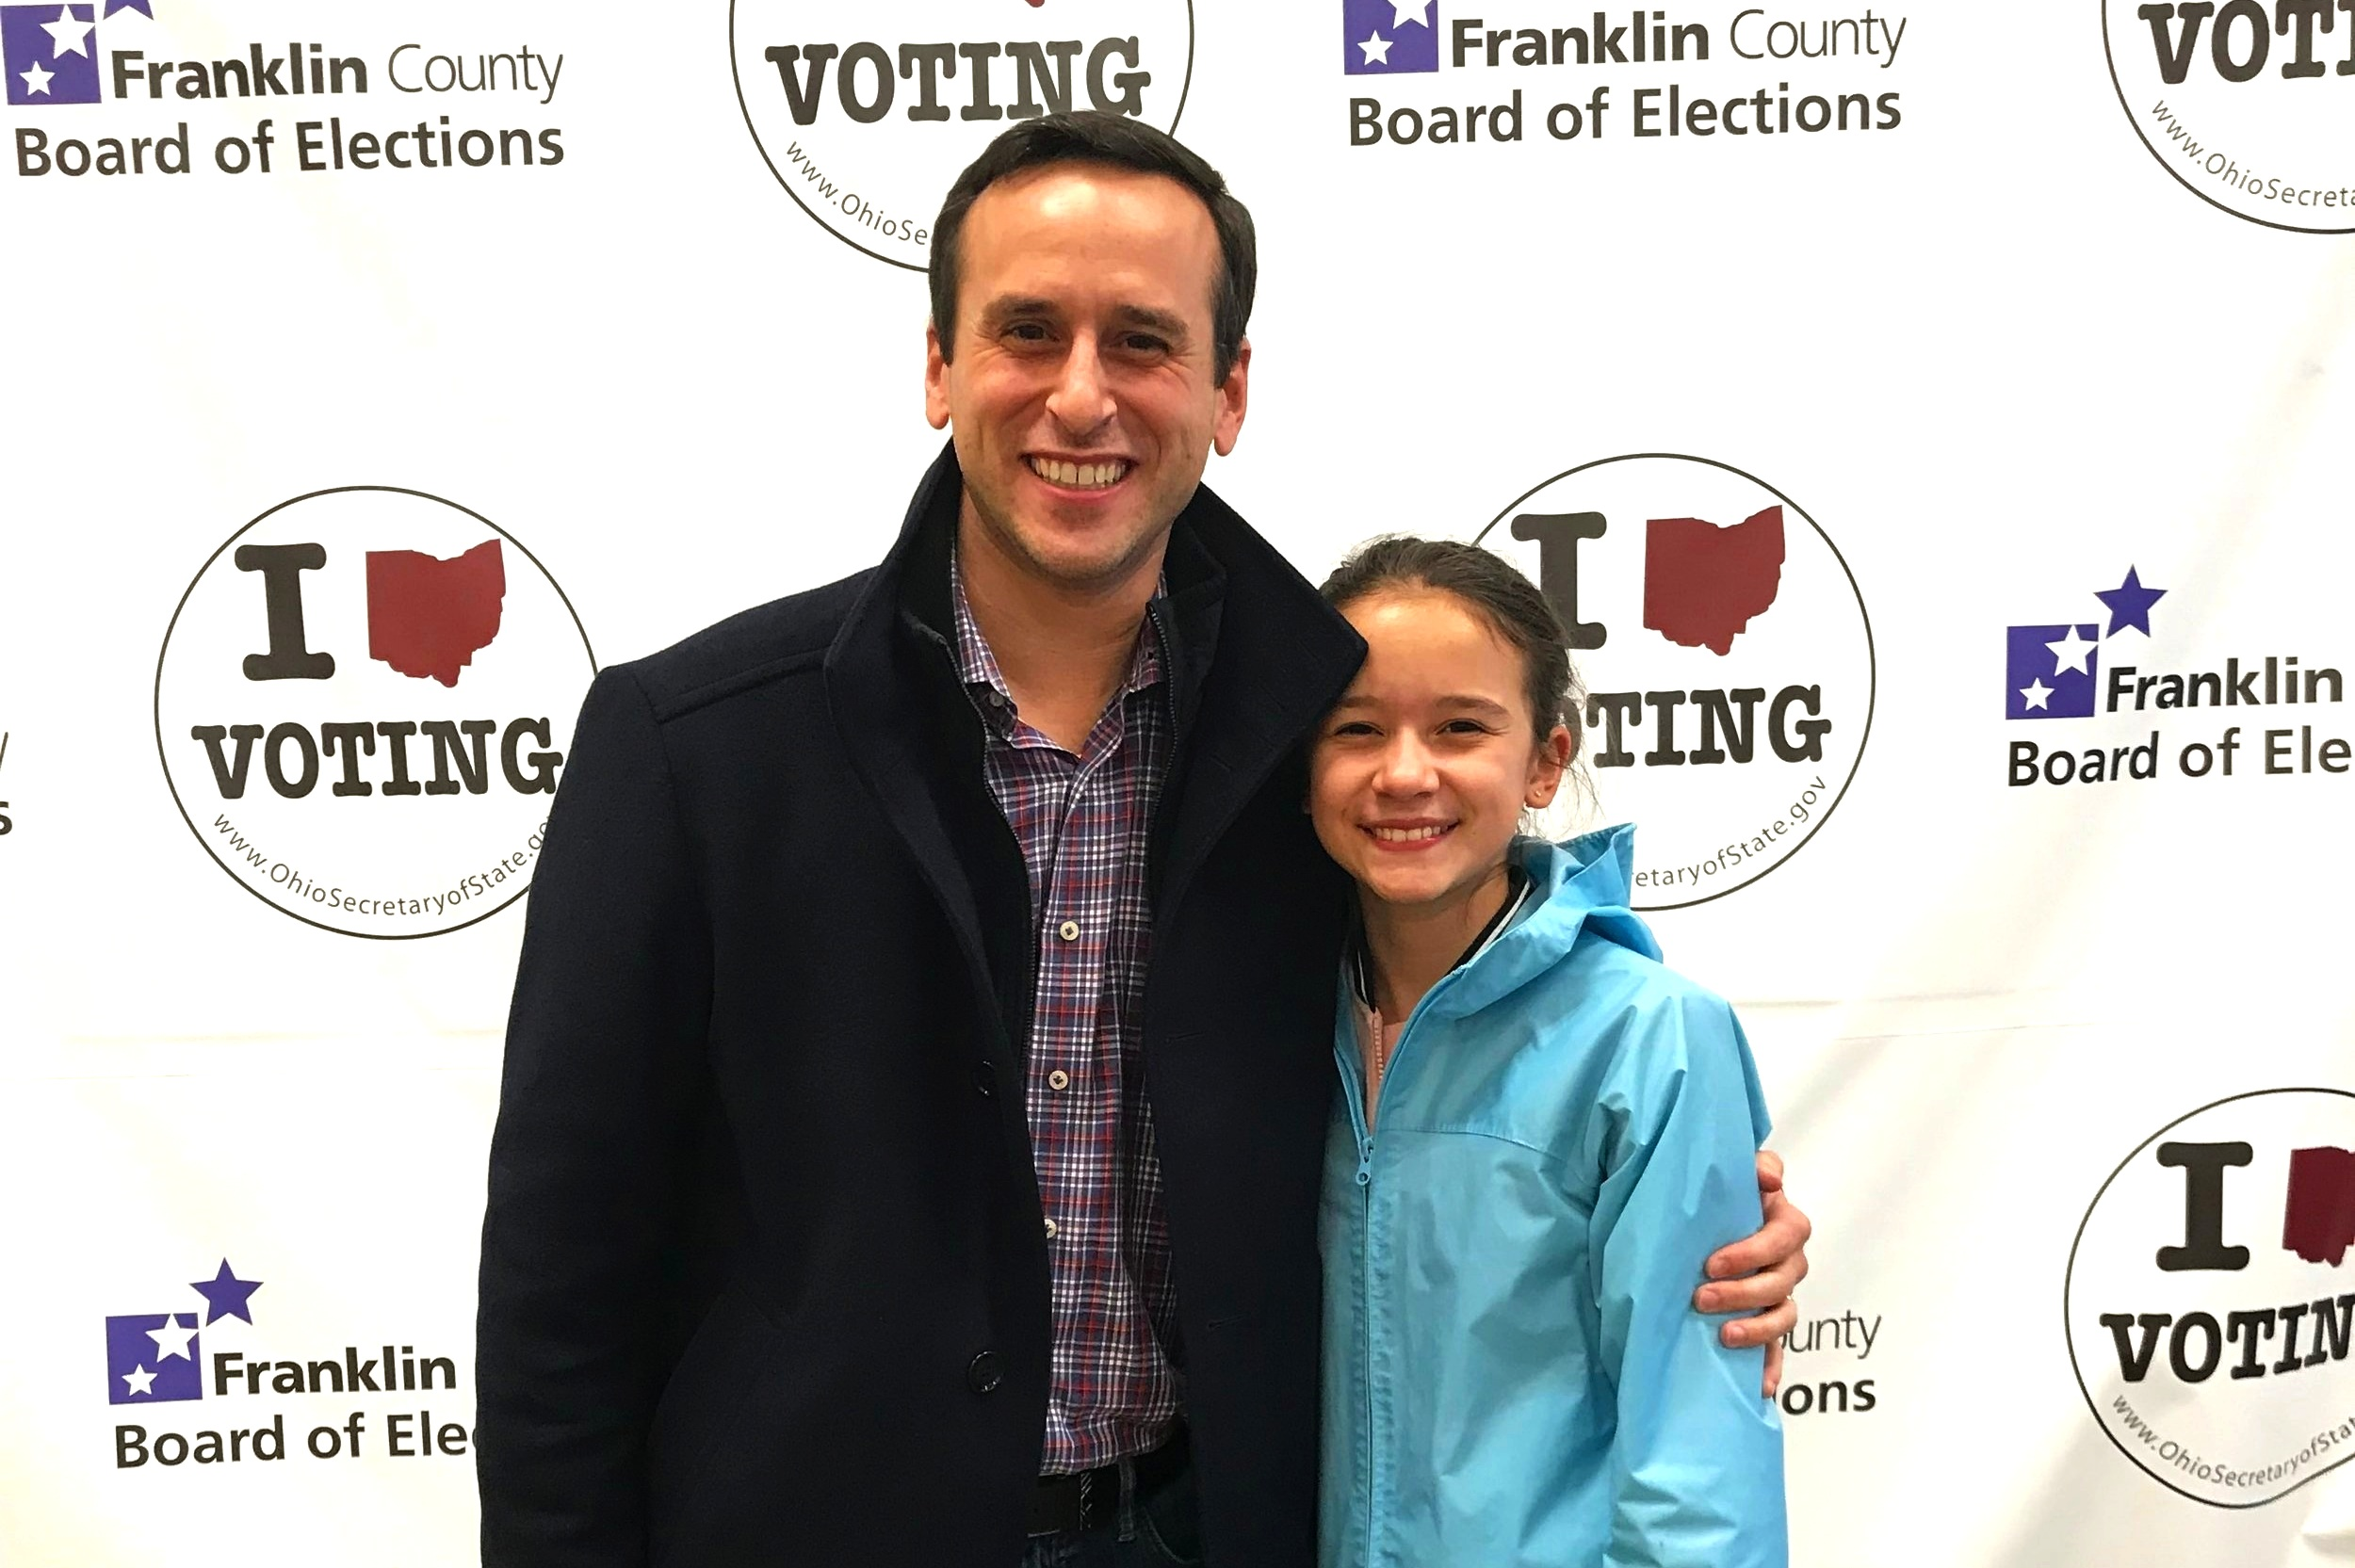 Issues - Troy believes our leaders must set good examples for our kids and grand kids. He thinks about how our actions impact future generations.